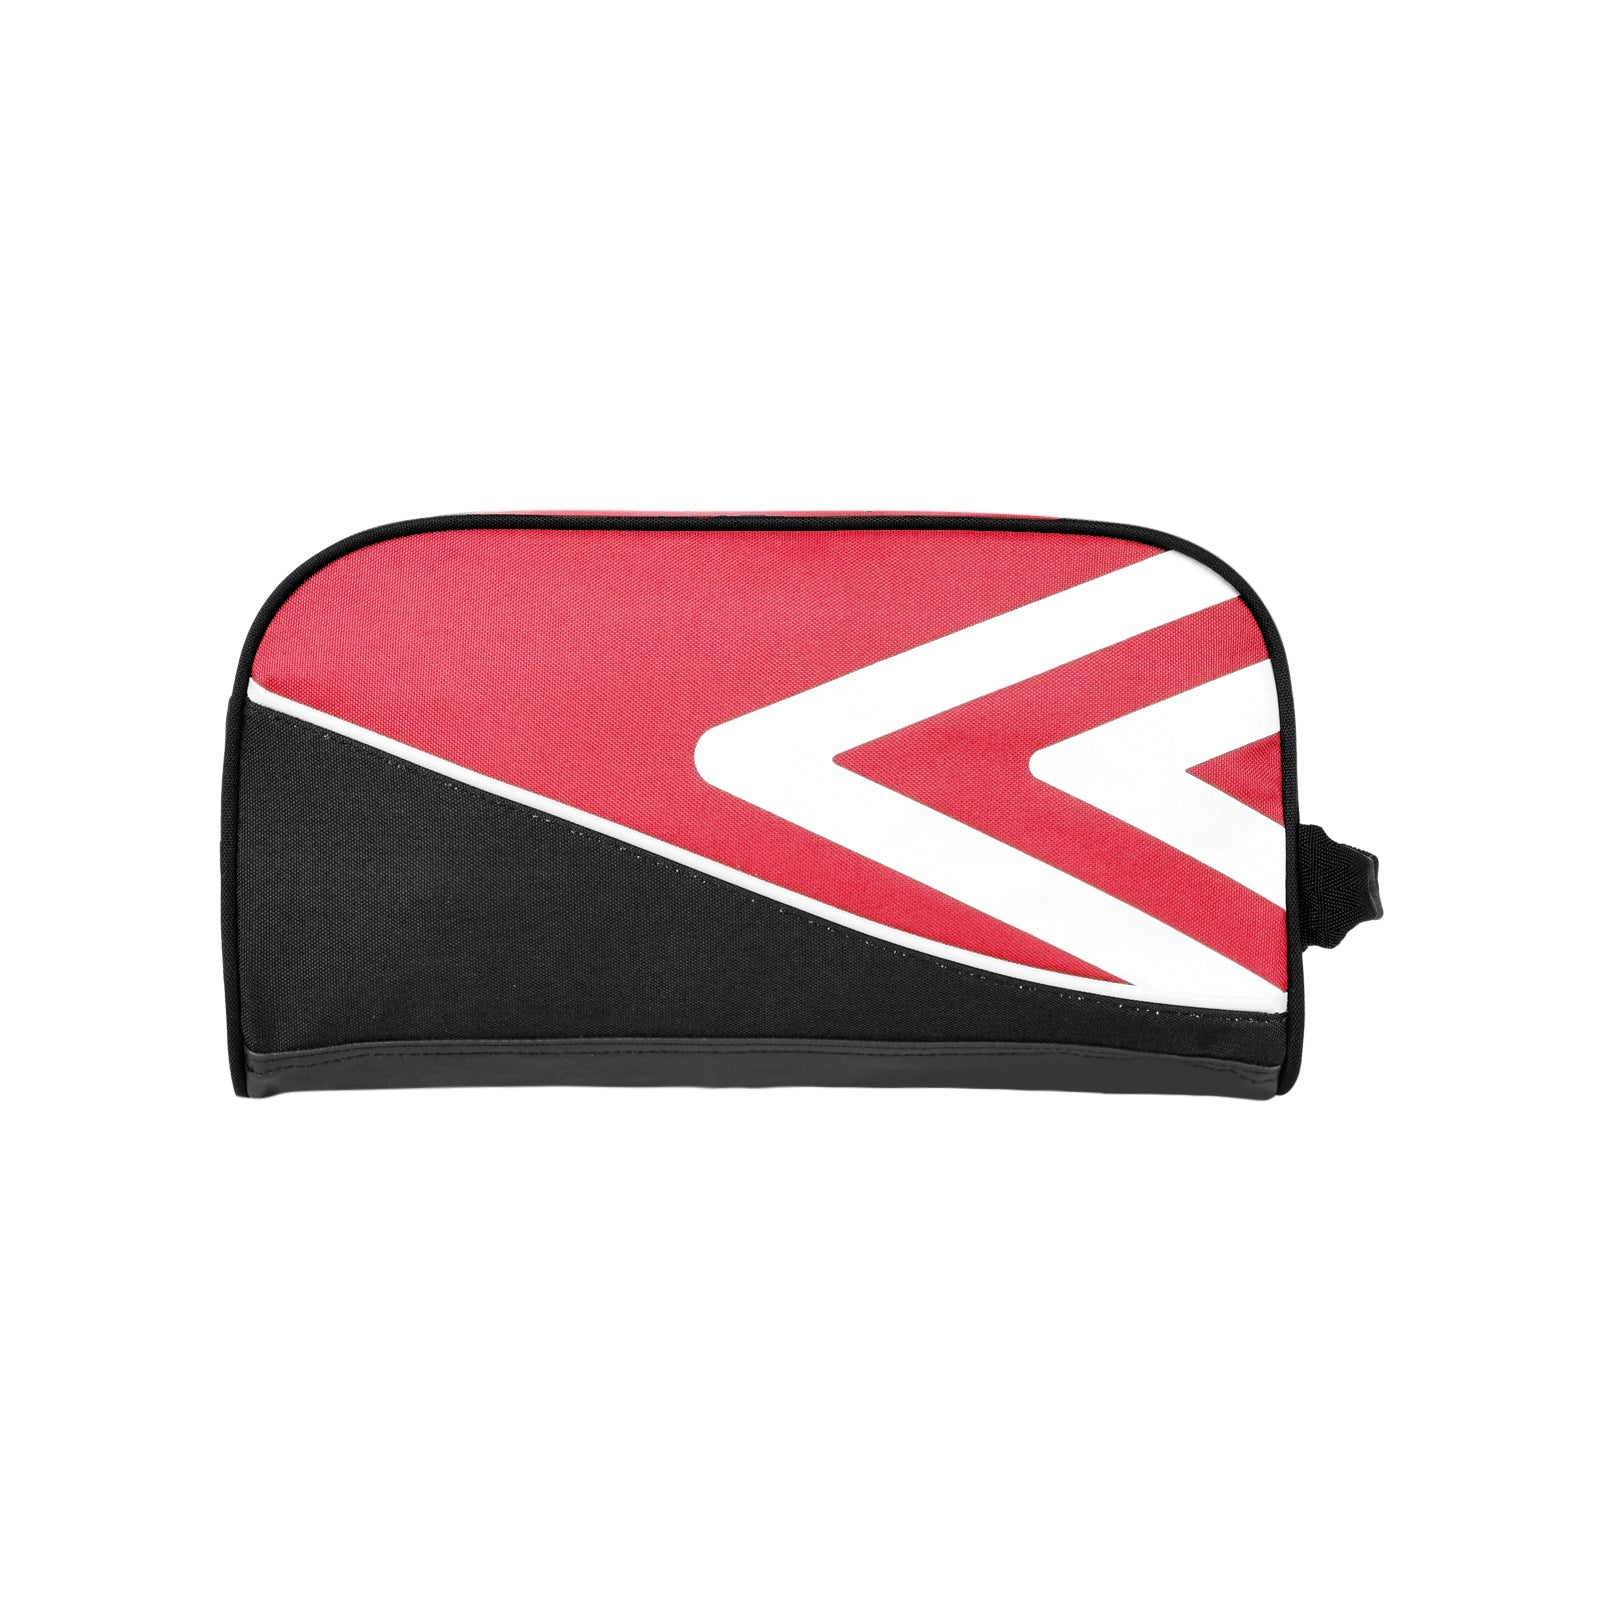 Umbro Pro Training Bootbag in red and black with large white Double Diamond logo